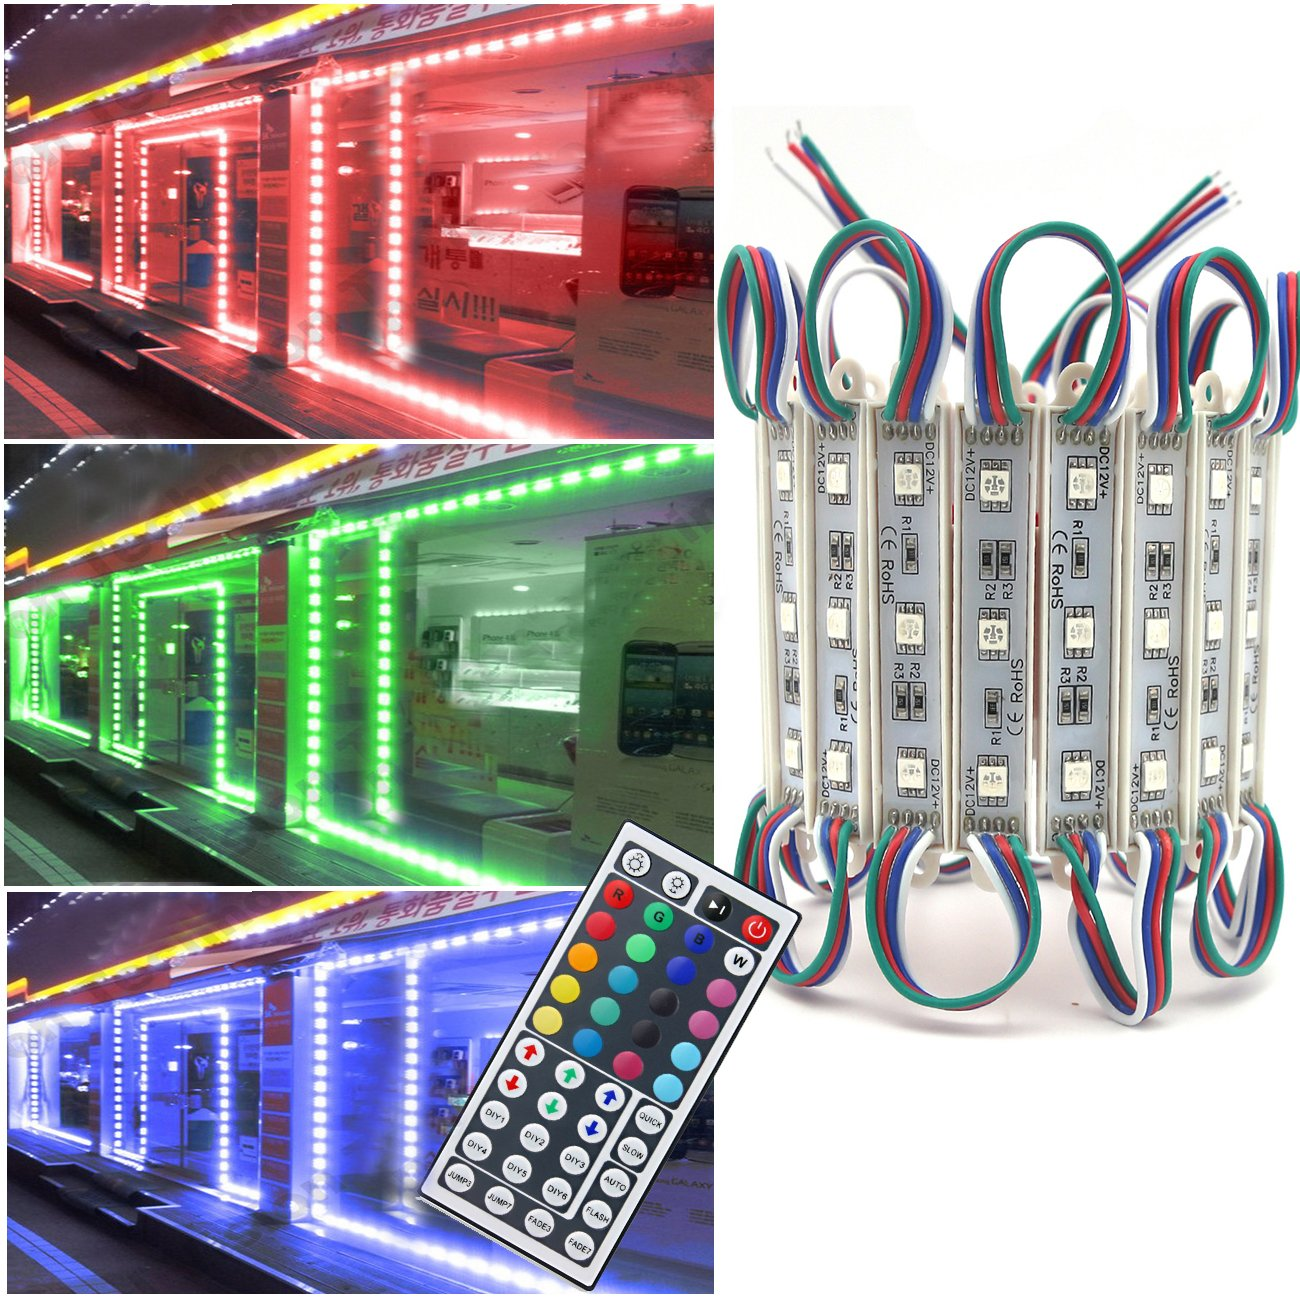 Storefront Lights, Pomelotree 2 Pack 3 Led 40PCS 5050 Super Bright LED Module Lights Waterproof Decorative Light with Tape Adhesive for Store Window Lighting and Advertising Signs by Pomelotree (Image #1)